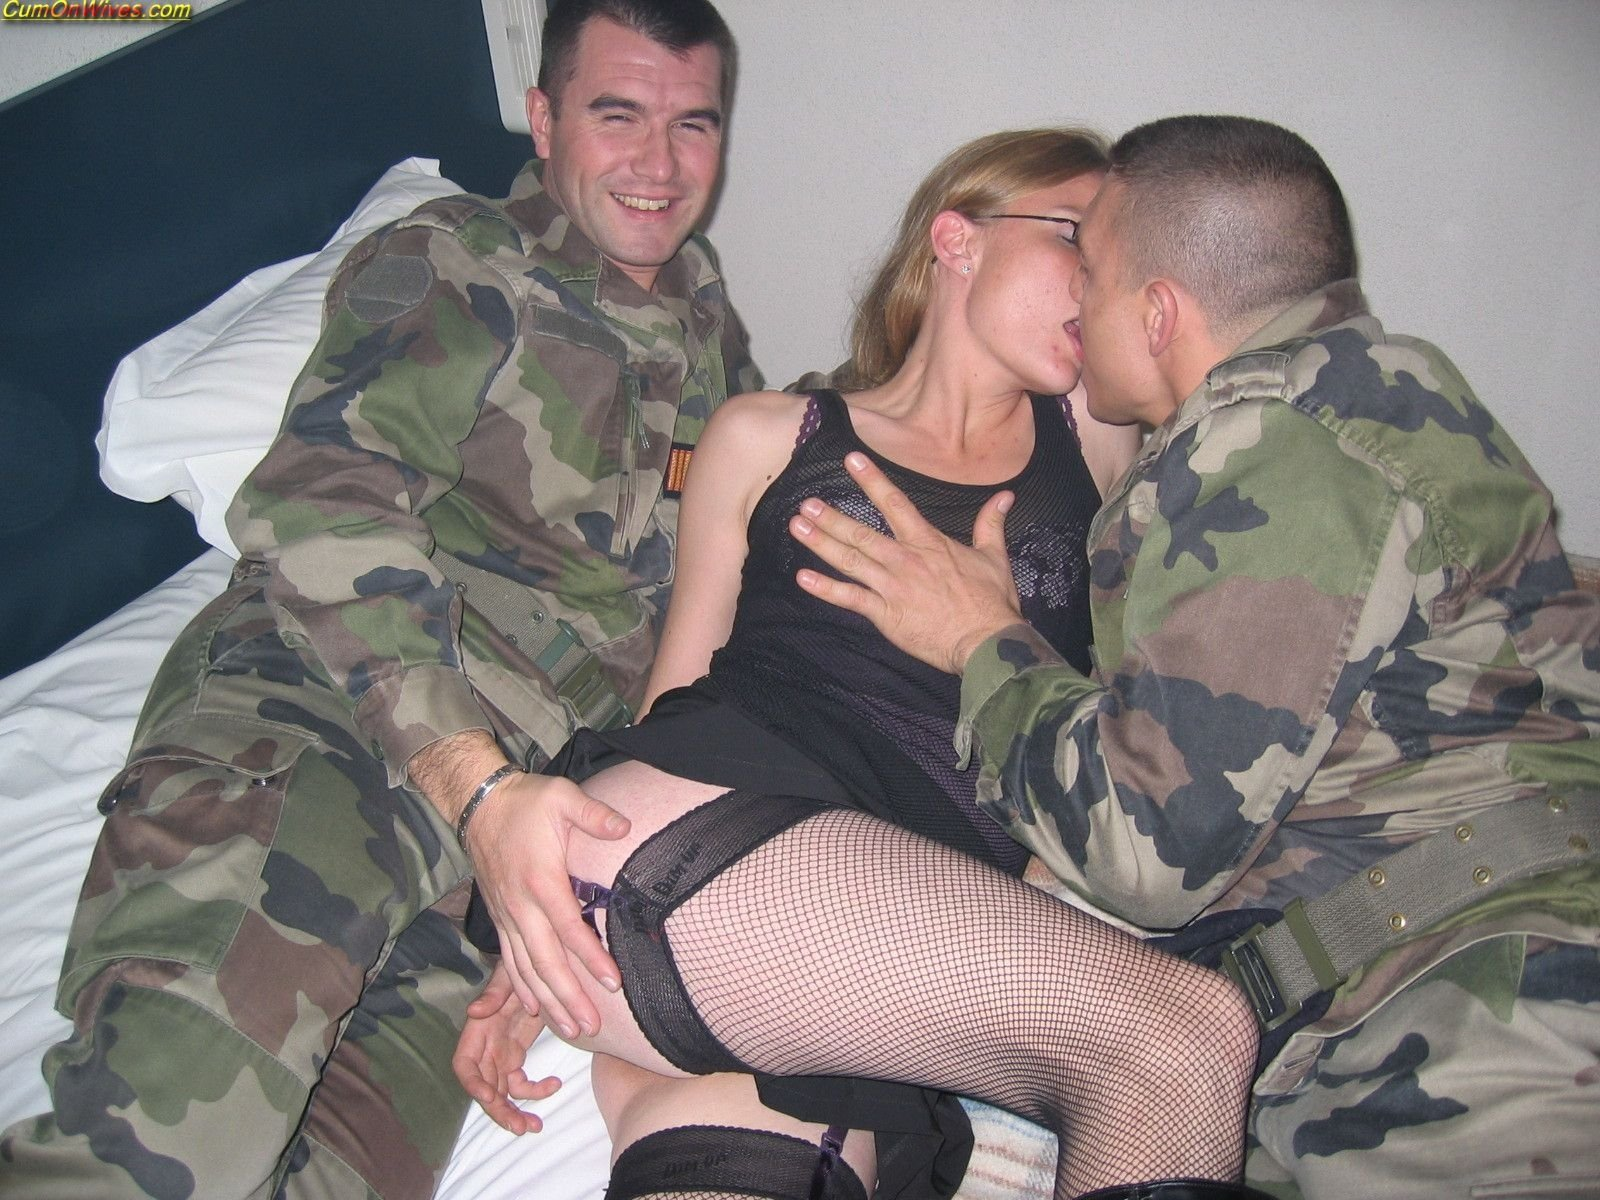 Think free fisting gangbang videos good HOLD THE